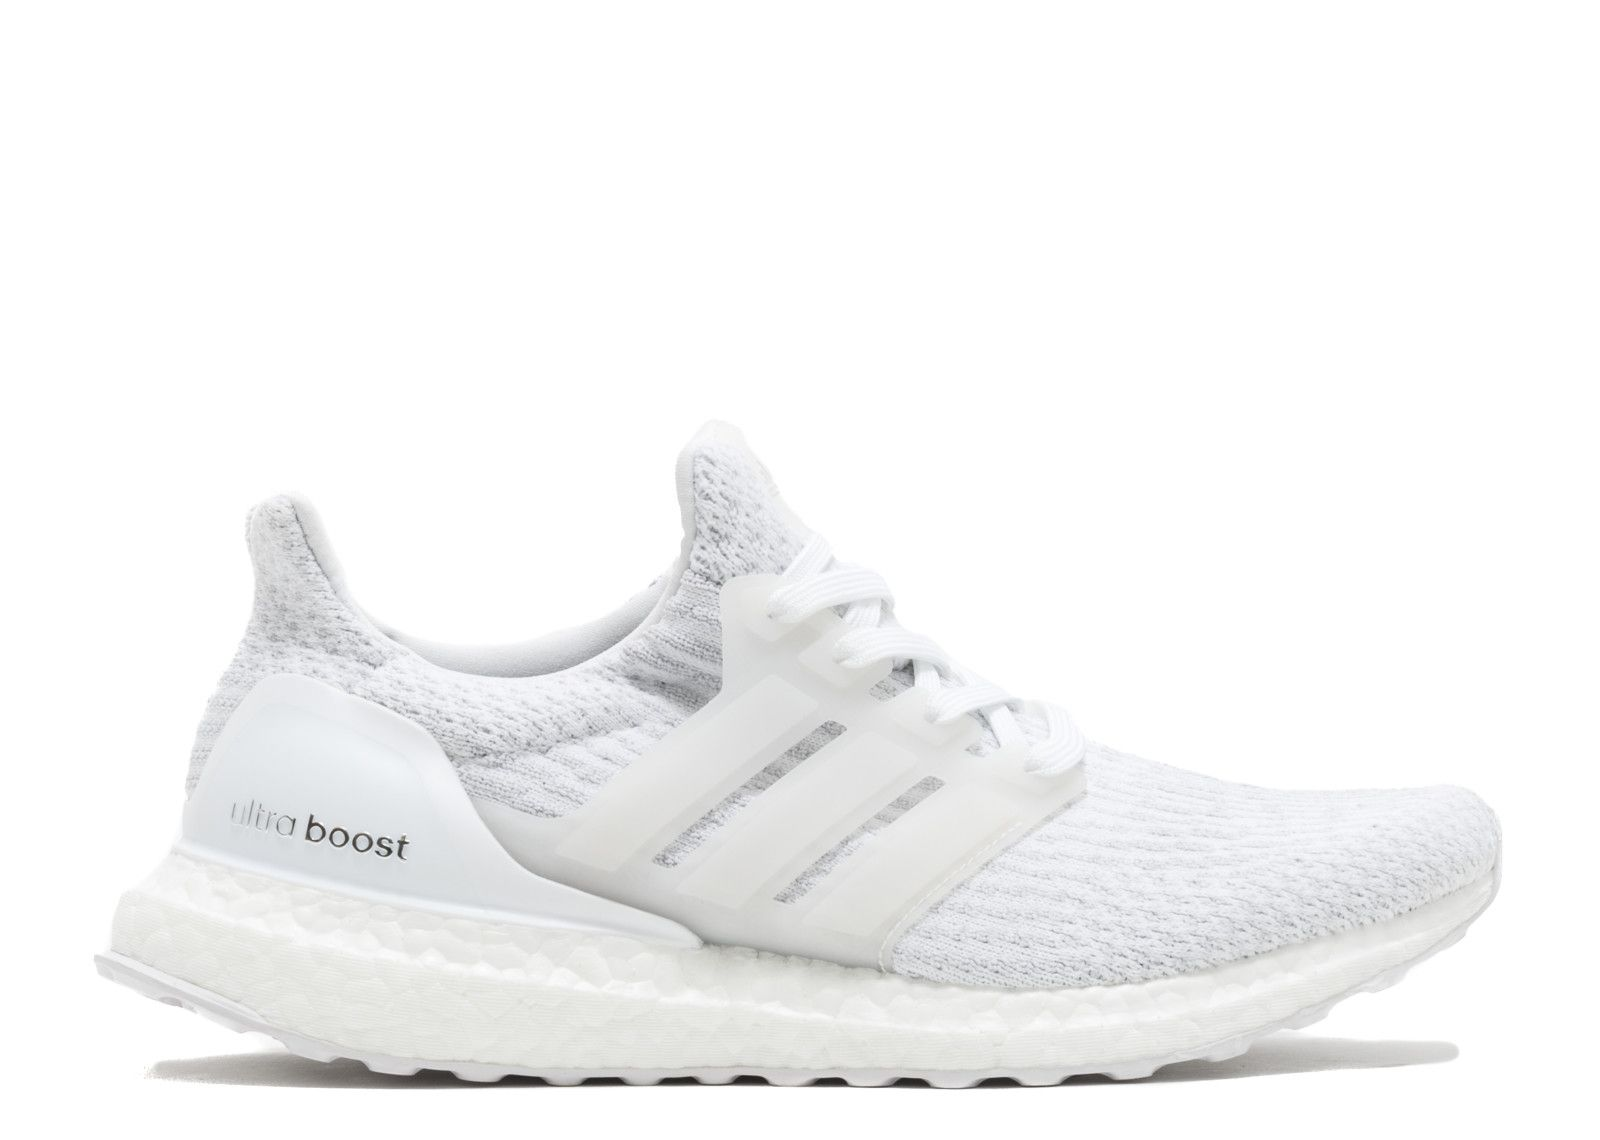 70e9180cff9 2017-2018 New Arrival adidas Ultra Boost 3.0 Triple White ba8841 ...